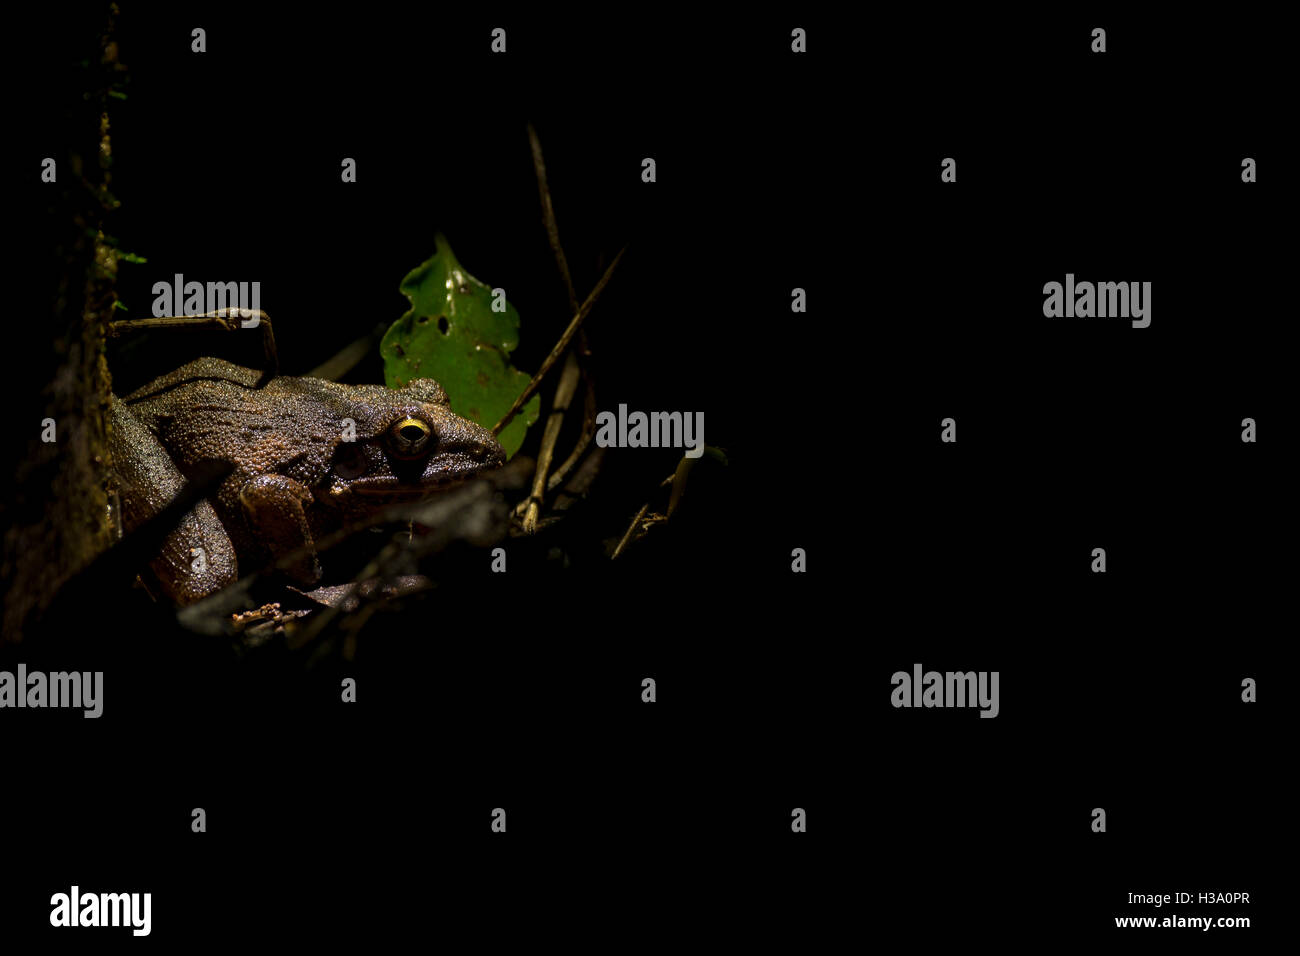 An Amboli leaping frog at home in the undergrowth at night within the hotel grounds of Ogale's Whistling Woods - Stock Image